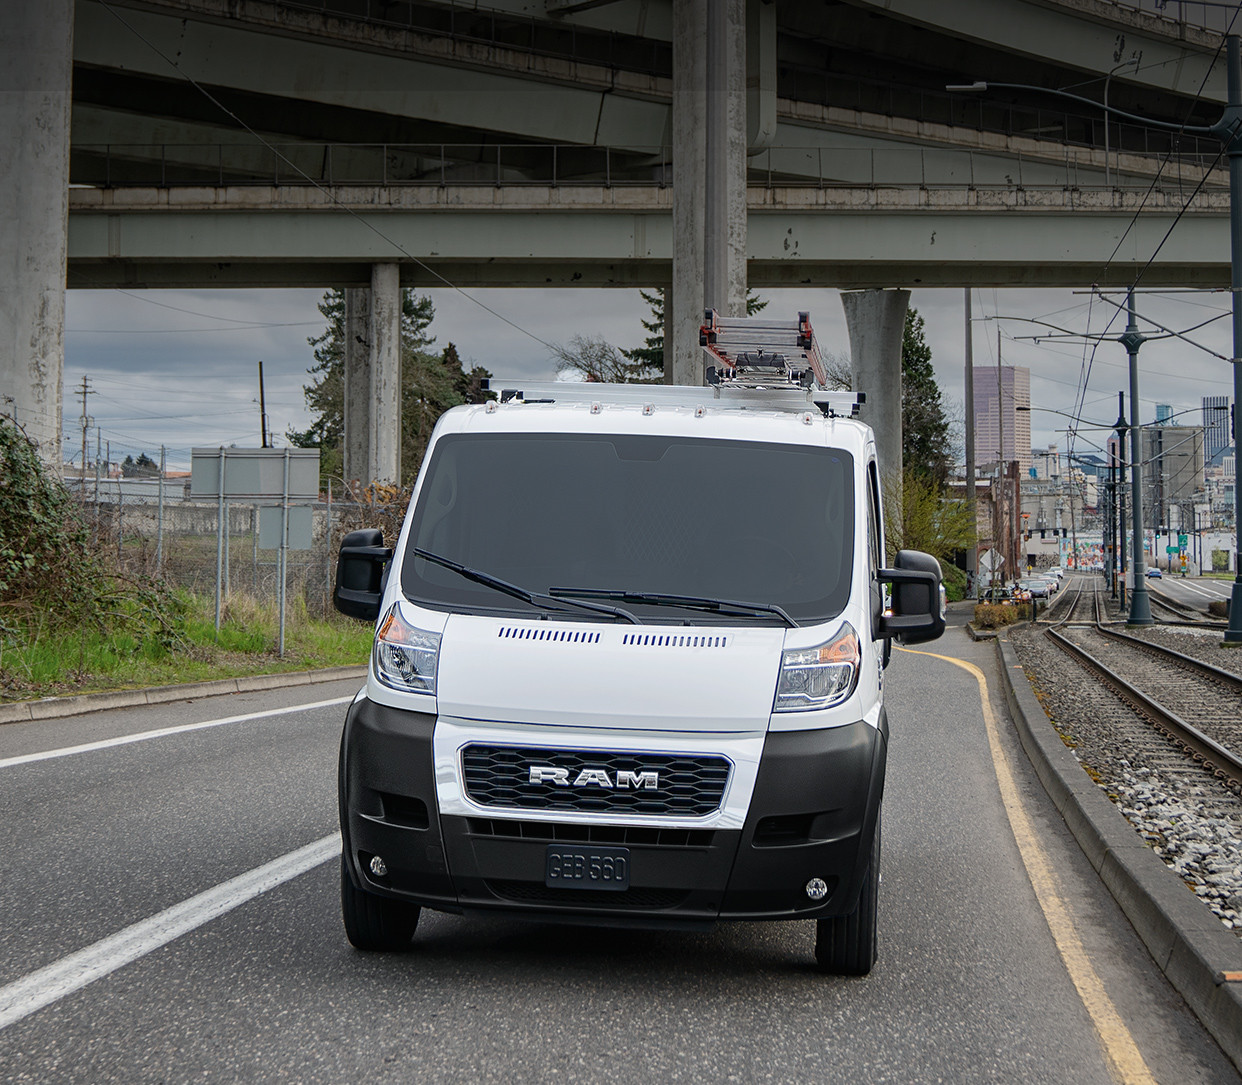 Front view of the white 2019 Ram ProMaster driving down a road beside train tracks